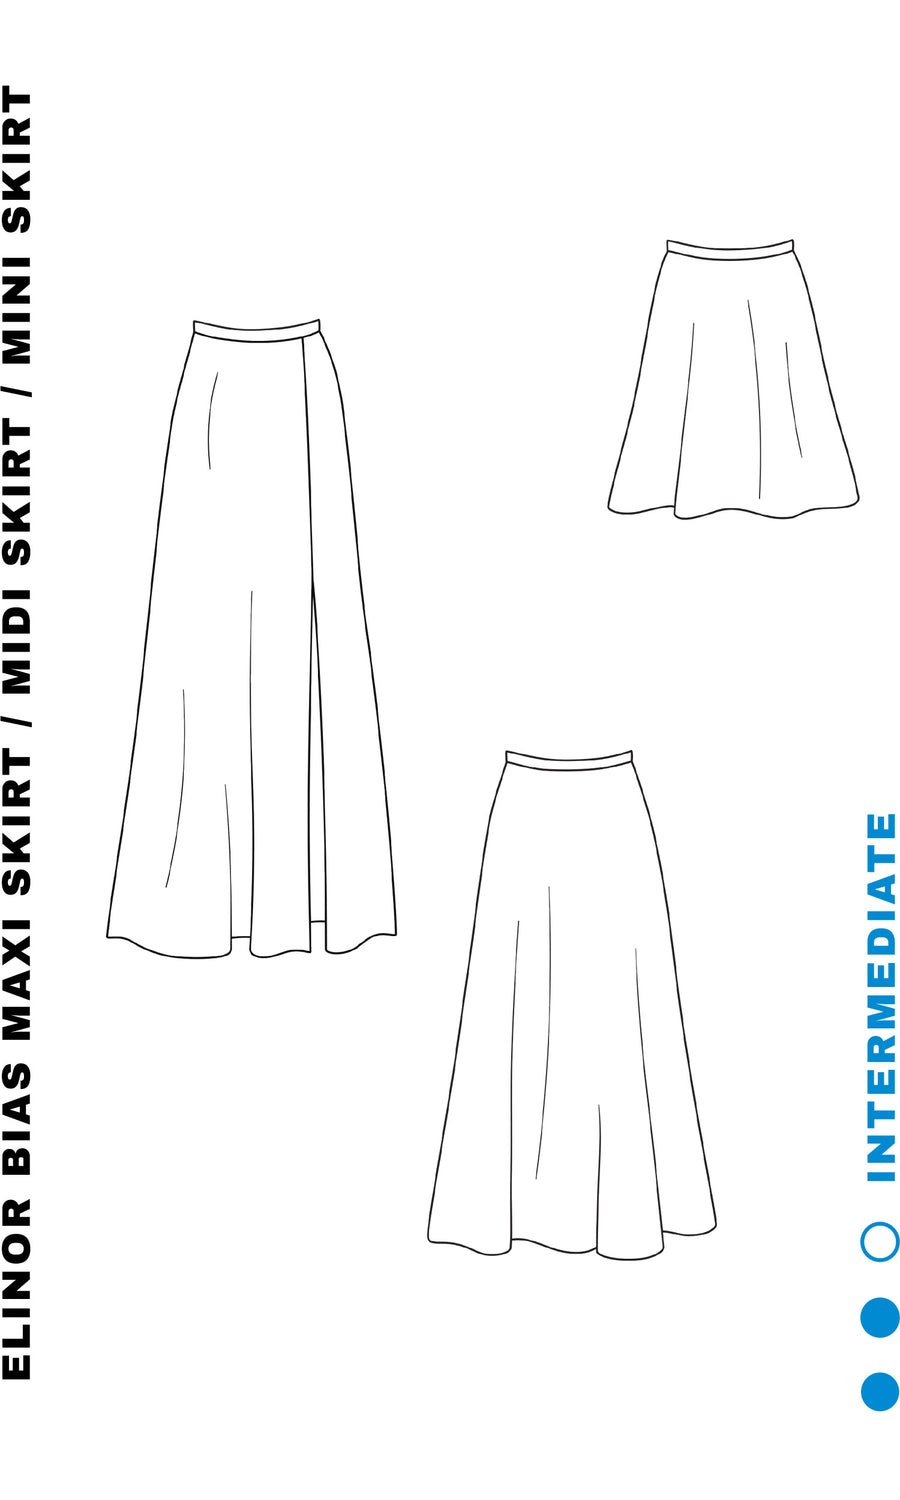 Liam by Ruby - Elinor Skirt Pattern